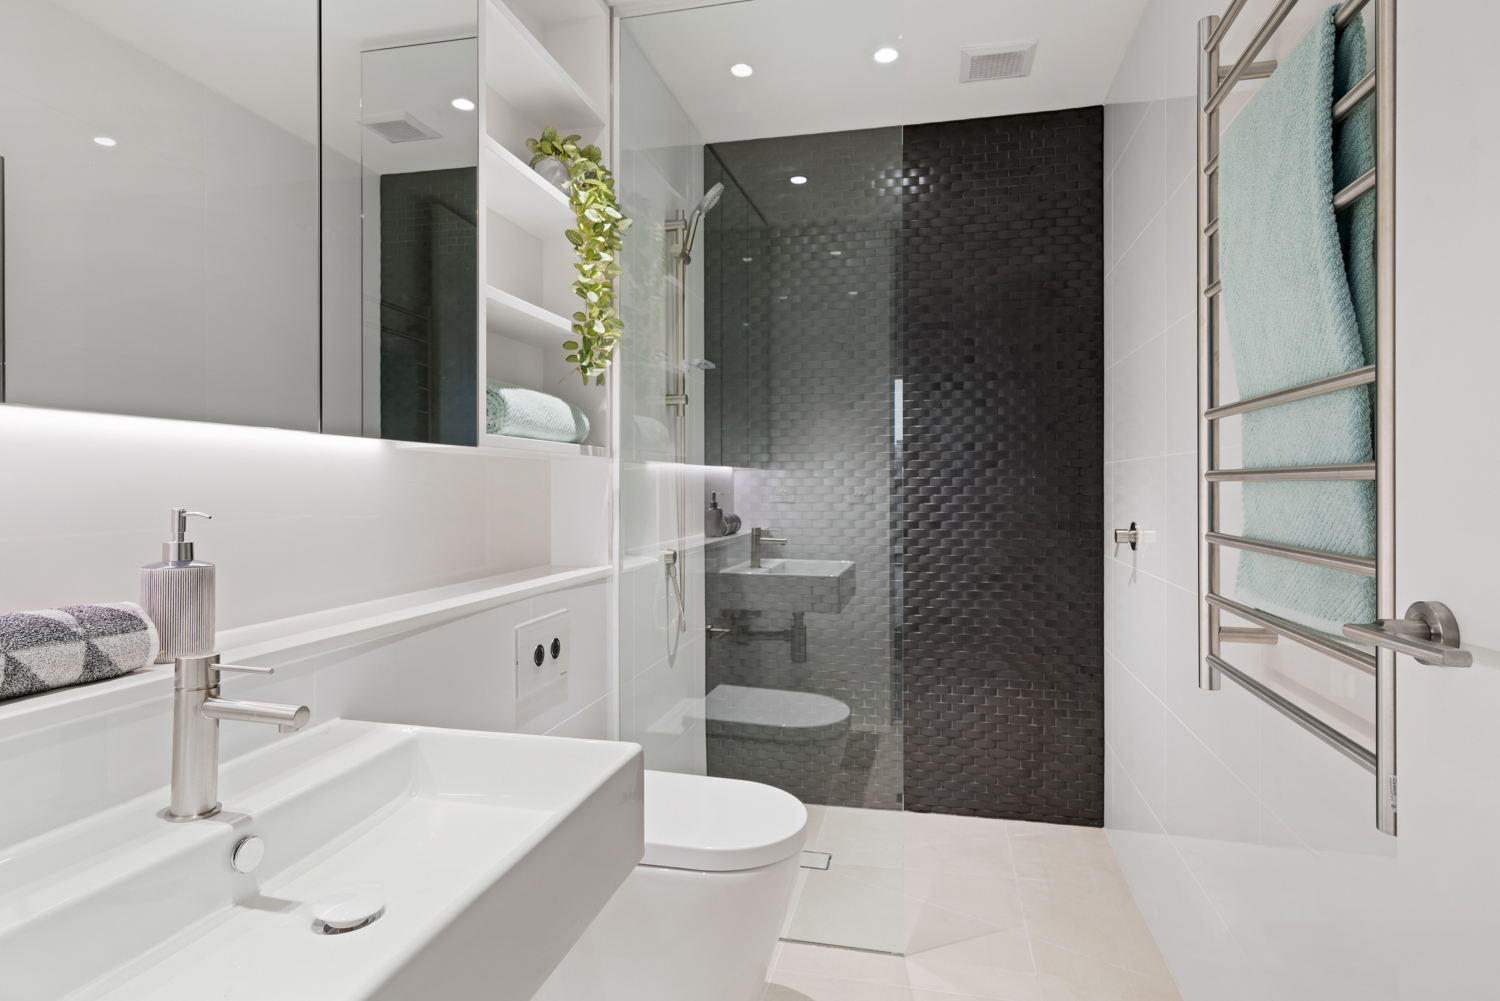 401-142-johnston-street-fitzroy-student-accommodation-Melbourne-Bathroom-2-Unilodgers